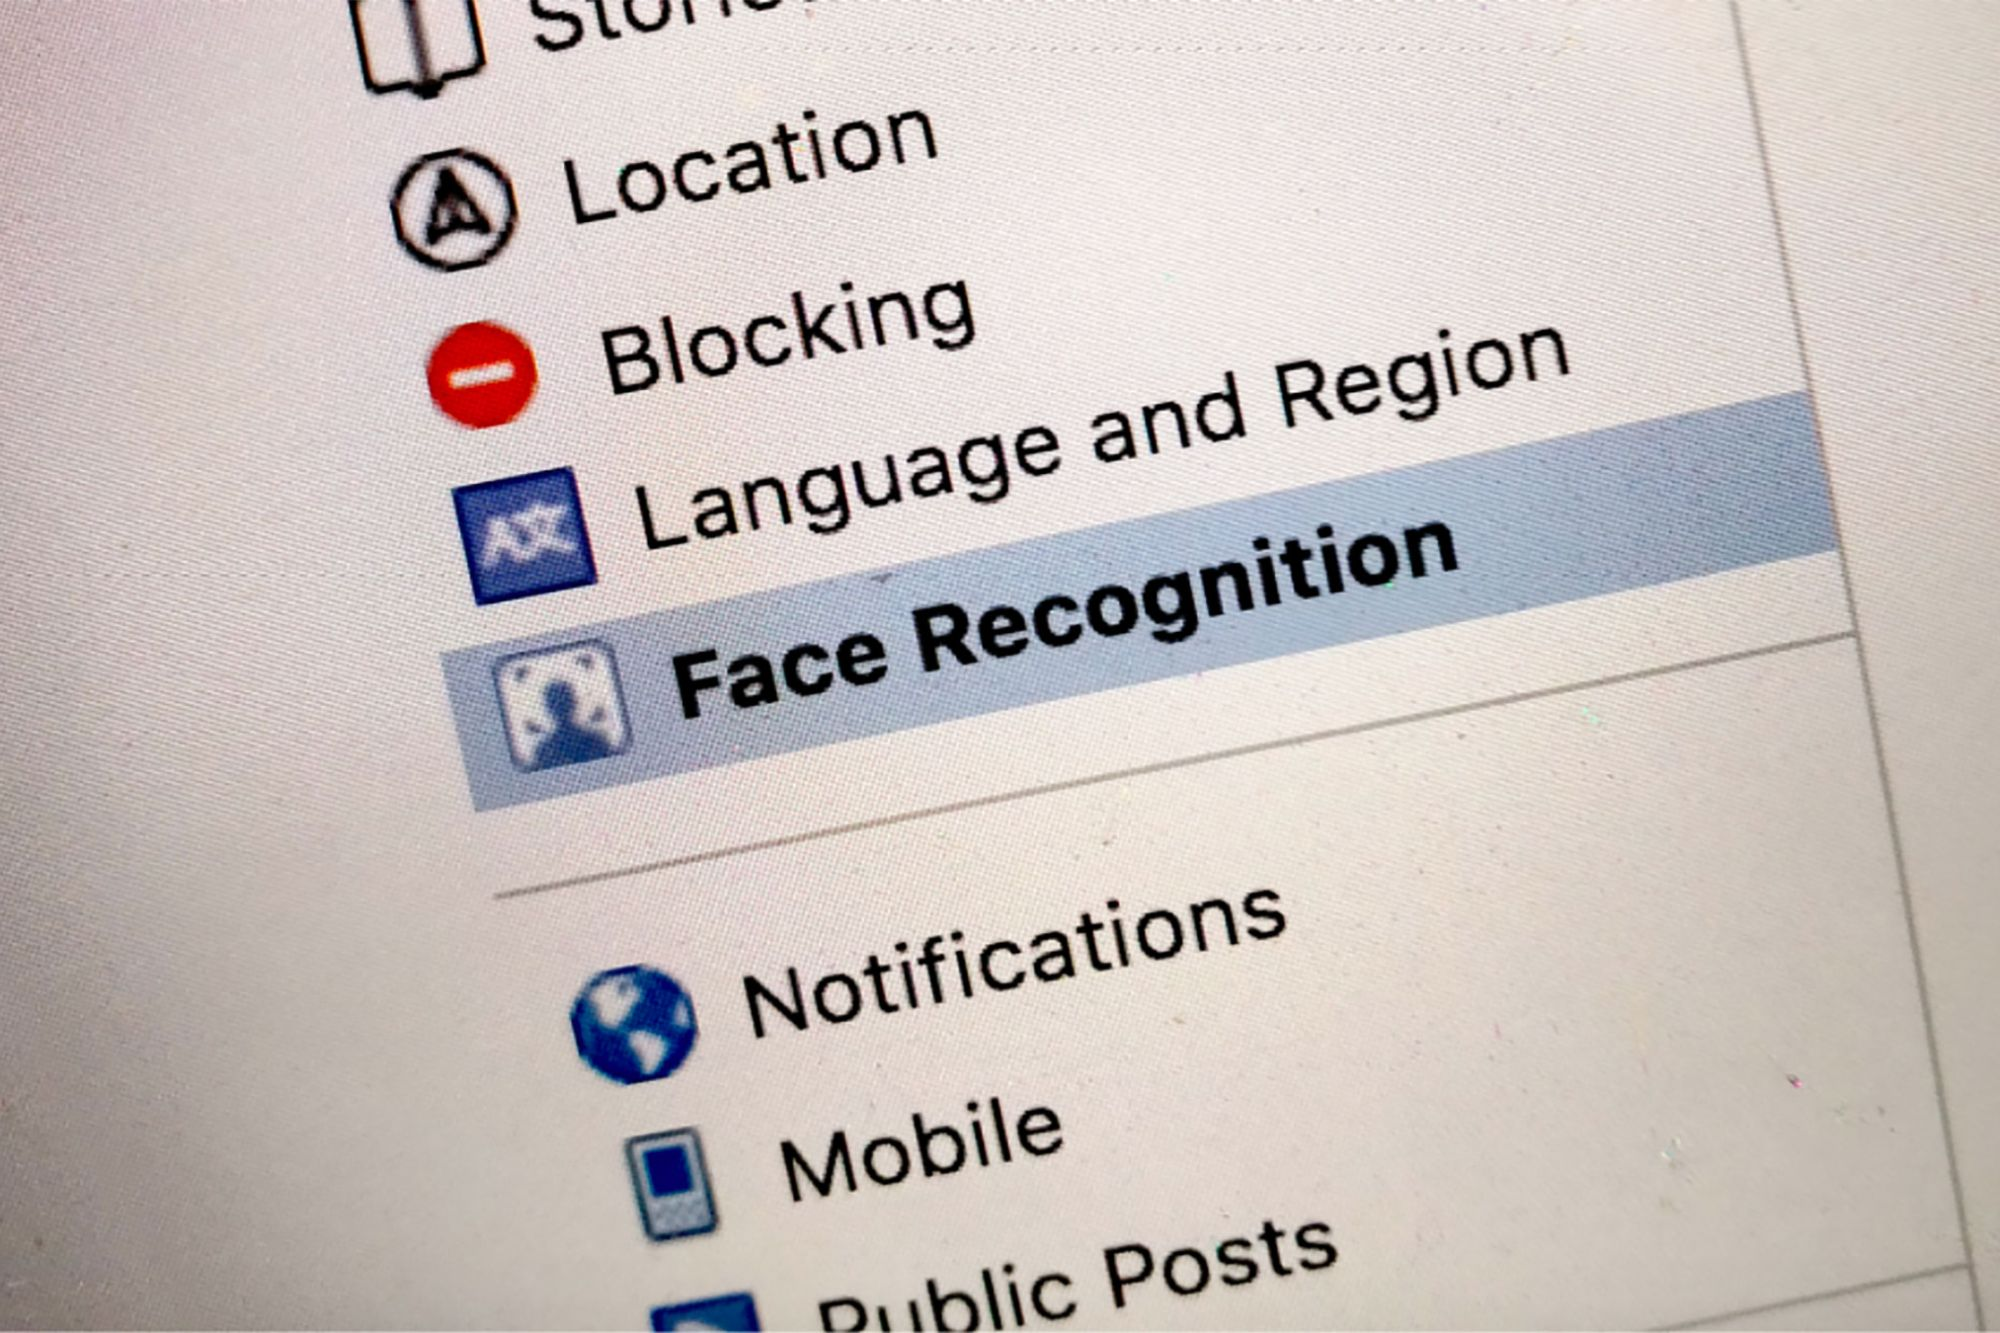 Facebook Users Can Sue Over Facial Recognition, Court Rules